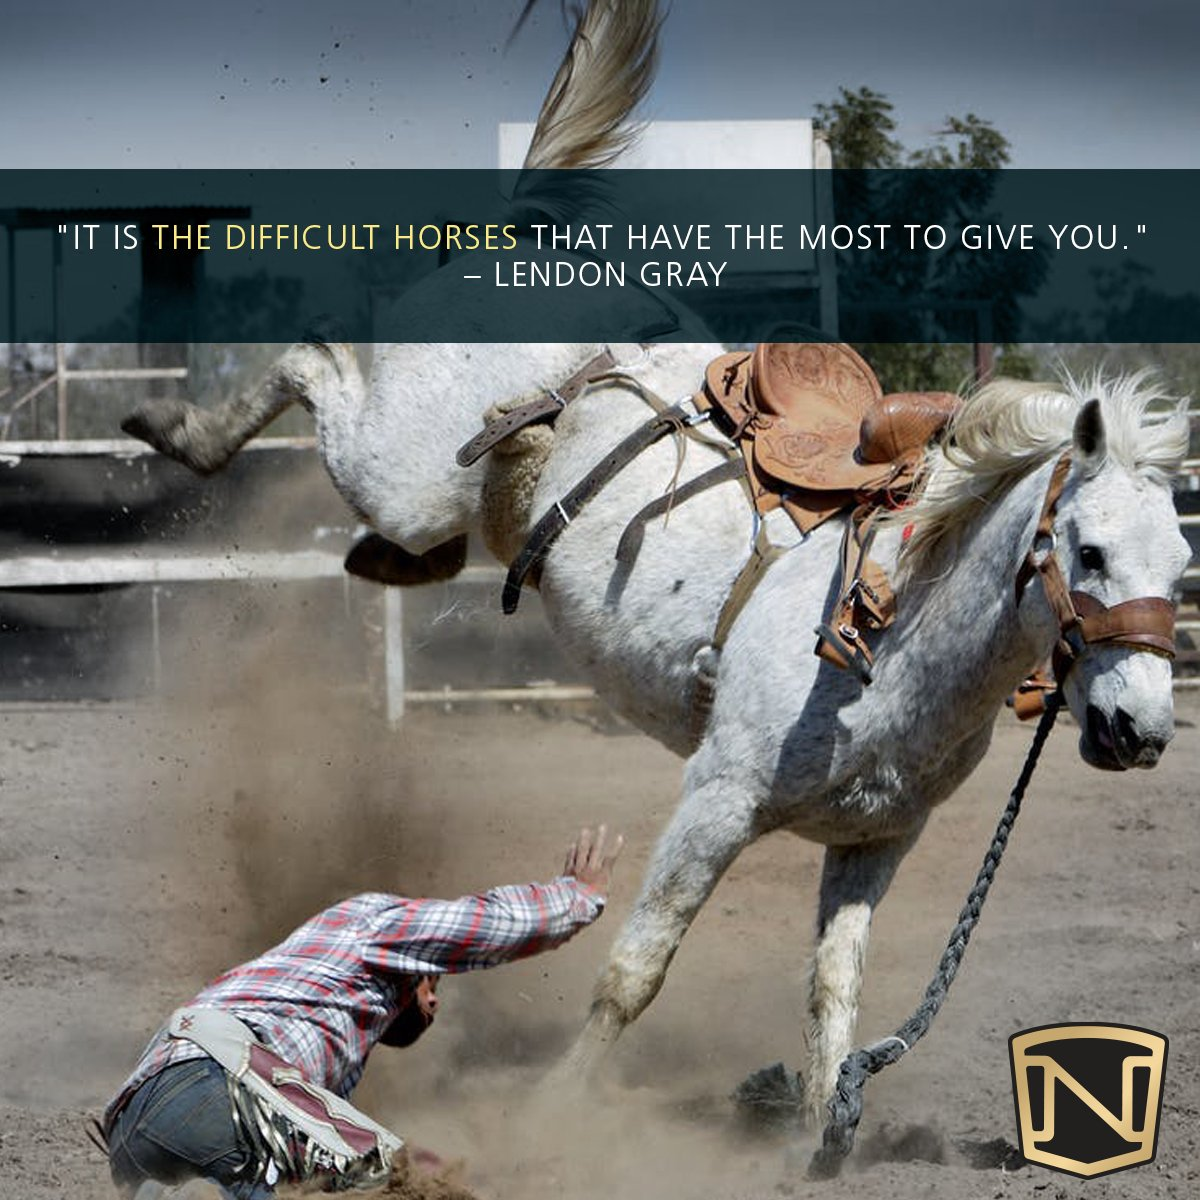 Noble Equestrian Usa On Twitter It S The Difficult Horses That Teach Us The Most Do You Agree Nobleoutfitters Quotes Horses Inspirationalquotes Equestrian Rodeo Https T Co Pf9y2yi7zh